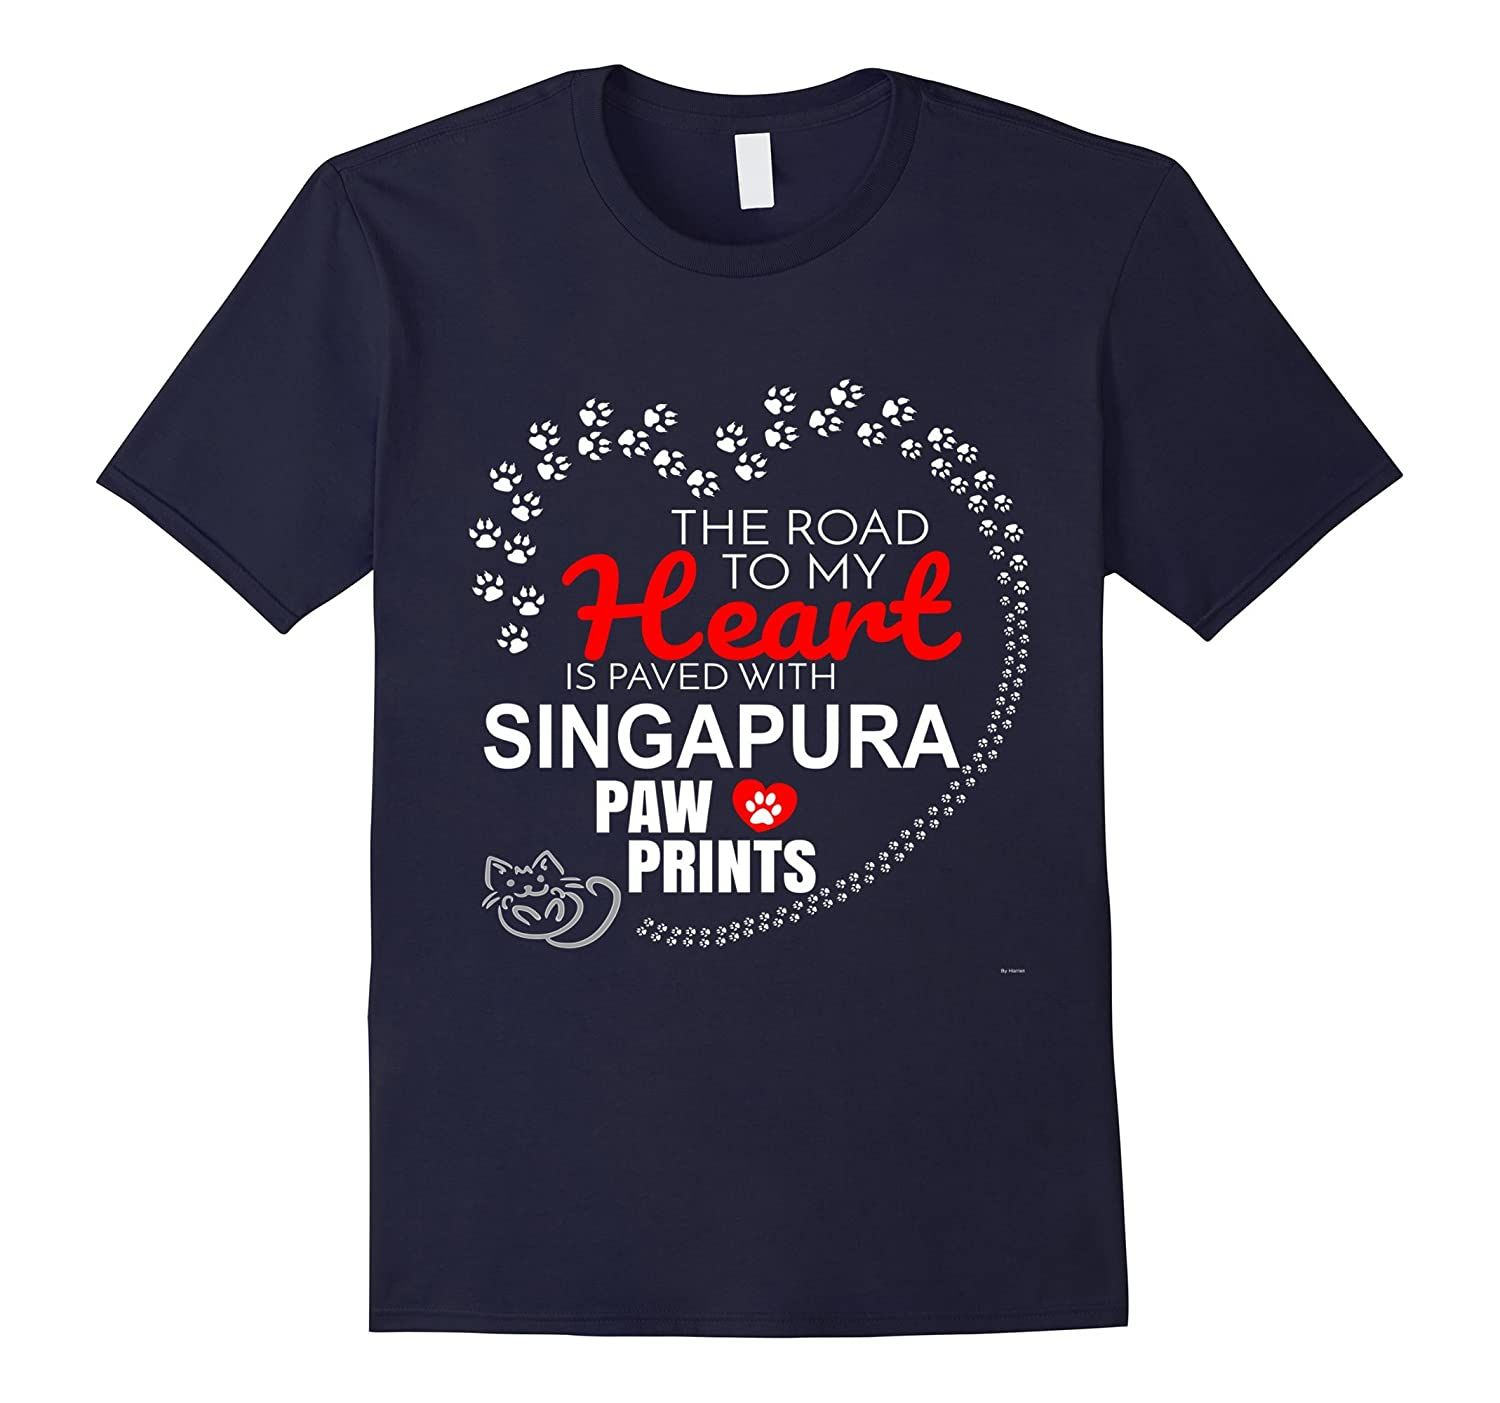 Singapura Tee Shirt - Gift For Cat Lovers-Awarplus